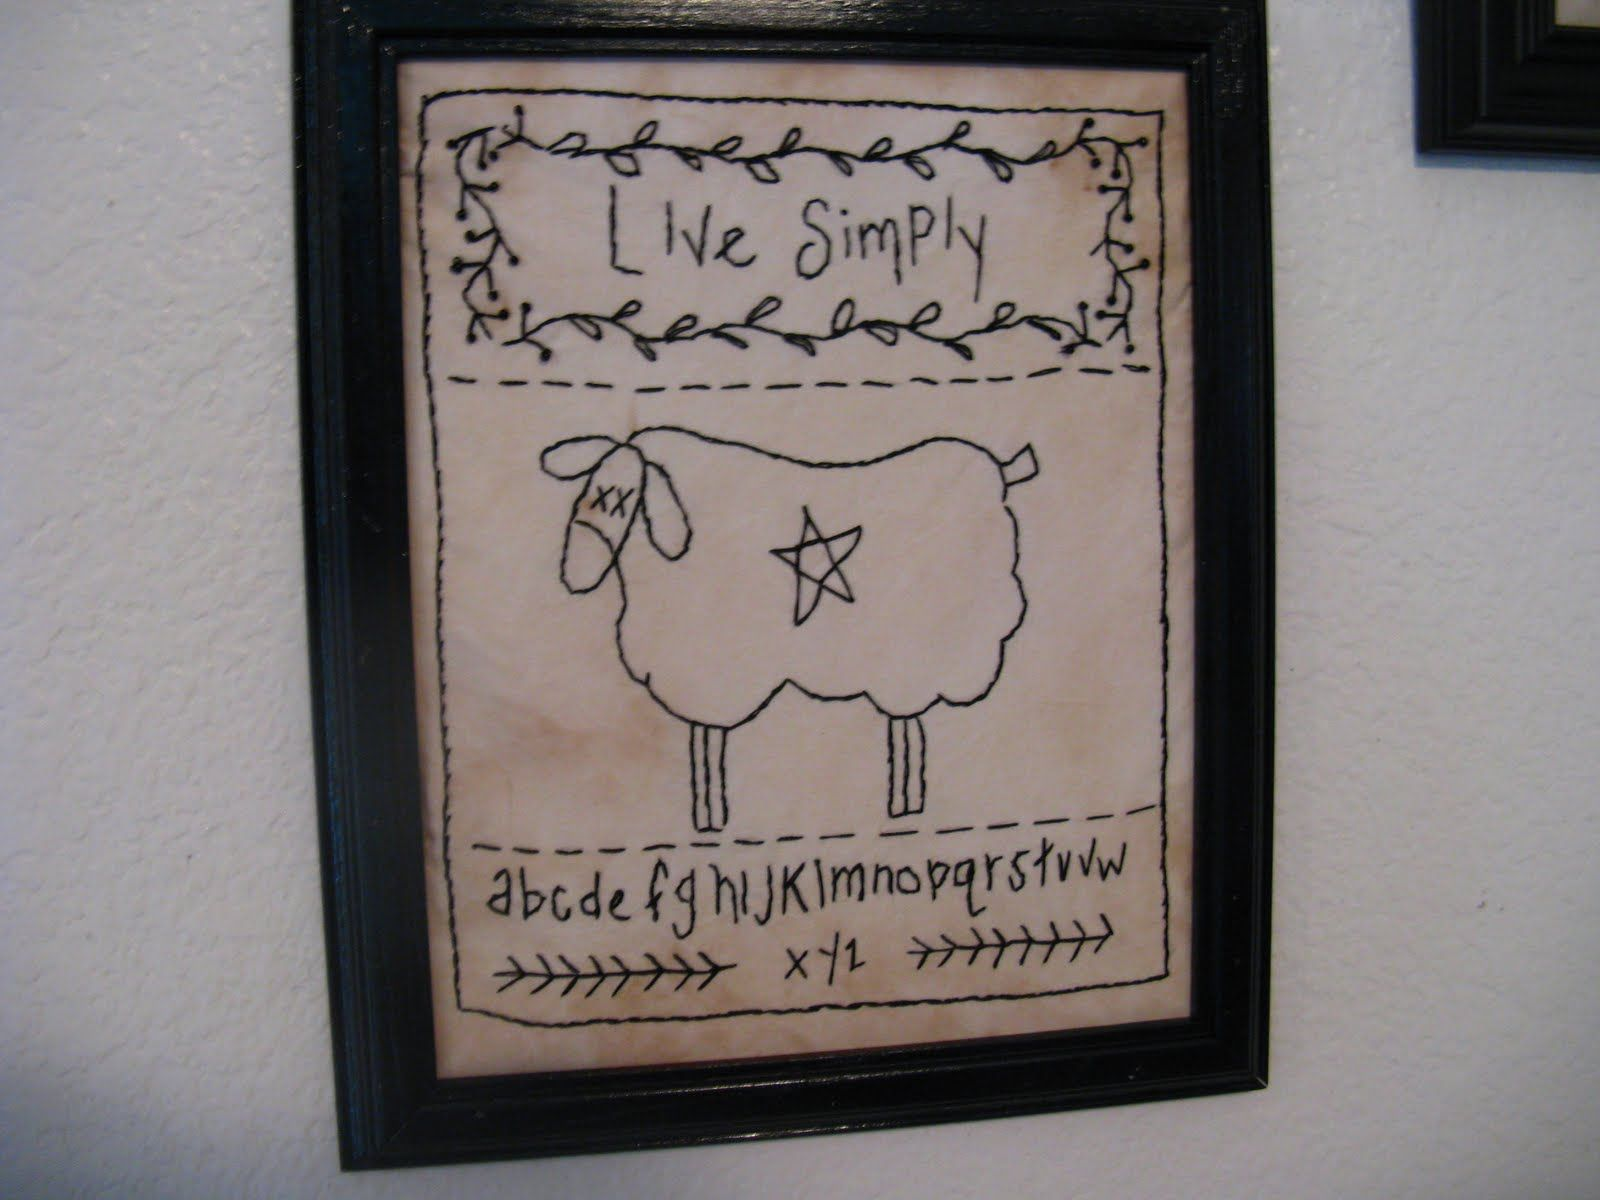 Free primitive embroidery patterns wood crafts free patterns free primitive embroidery patterns wood crafts free patterns woodcraft patterns and woodworking patterns bankloansurffo Gallery